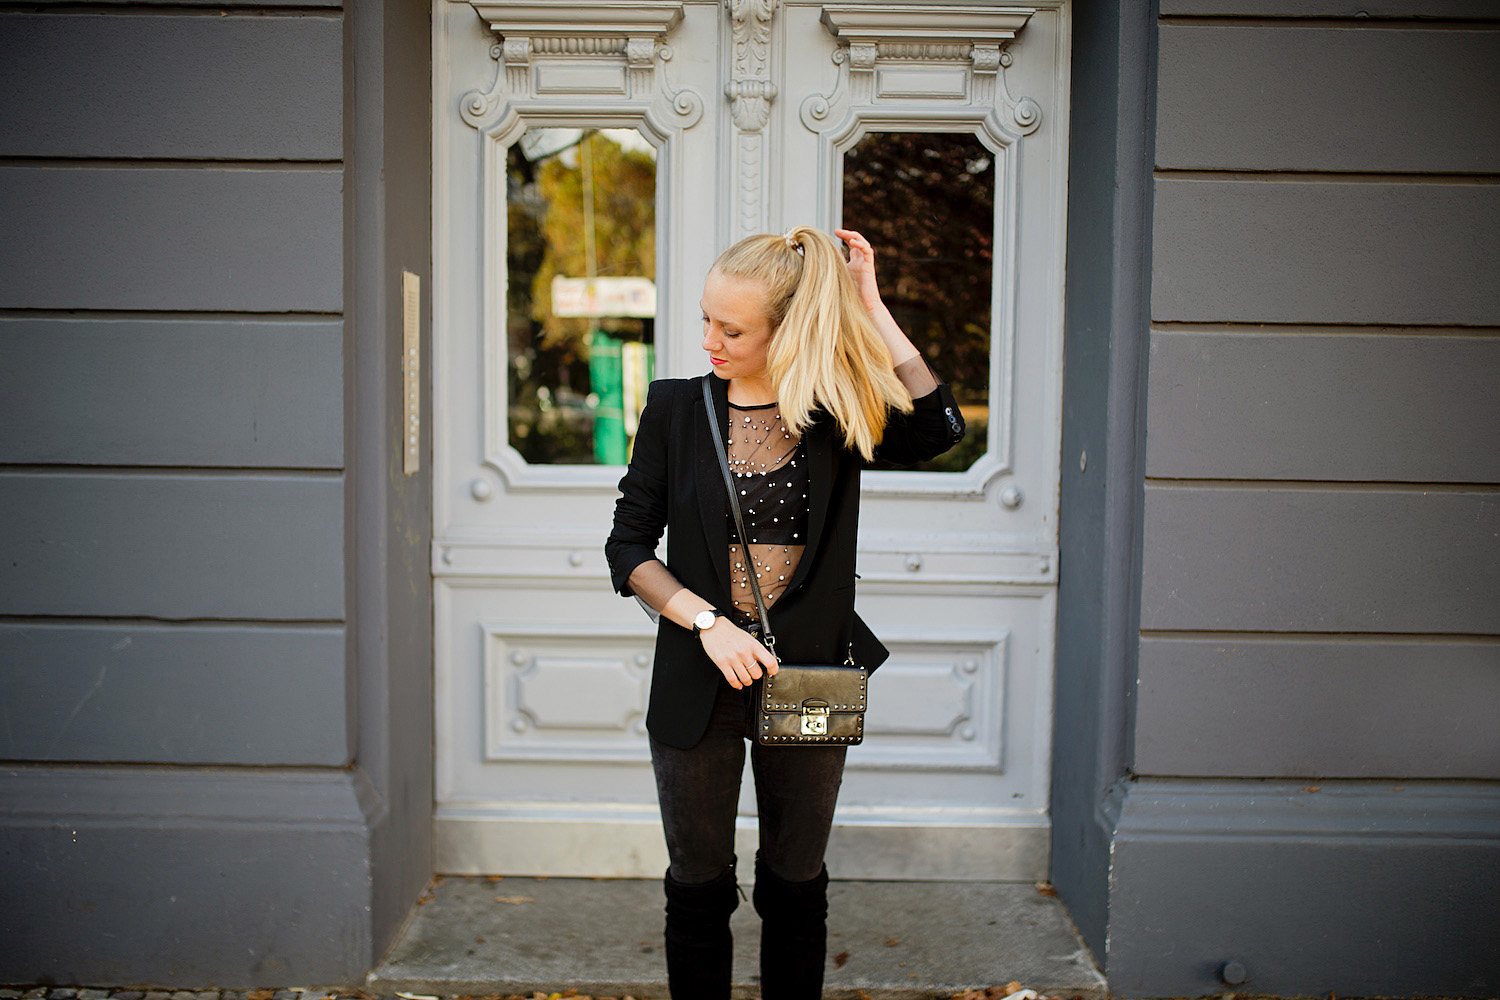 outfit black mesh shirt with pearls overknee boots